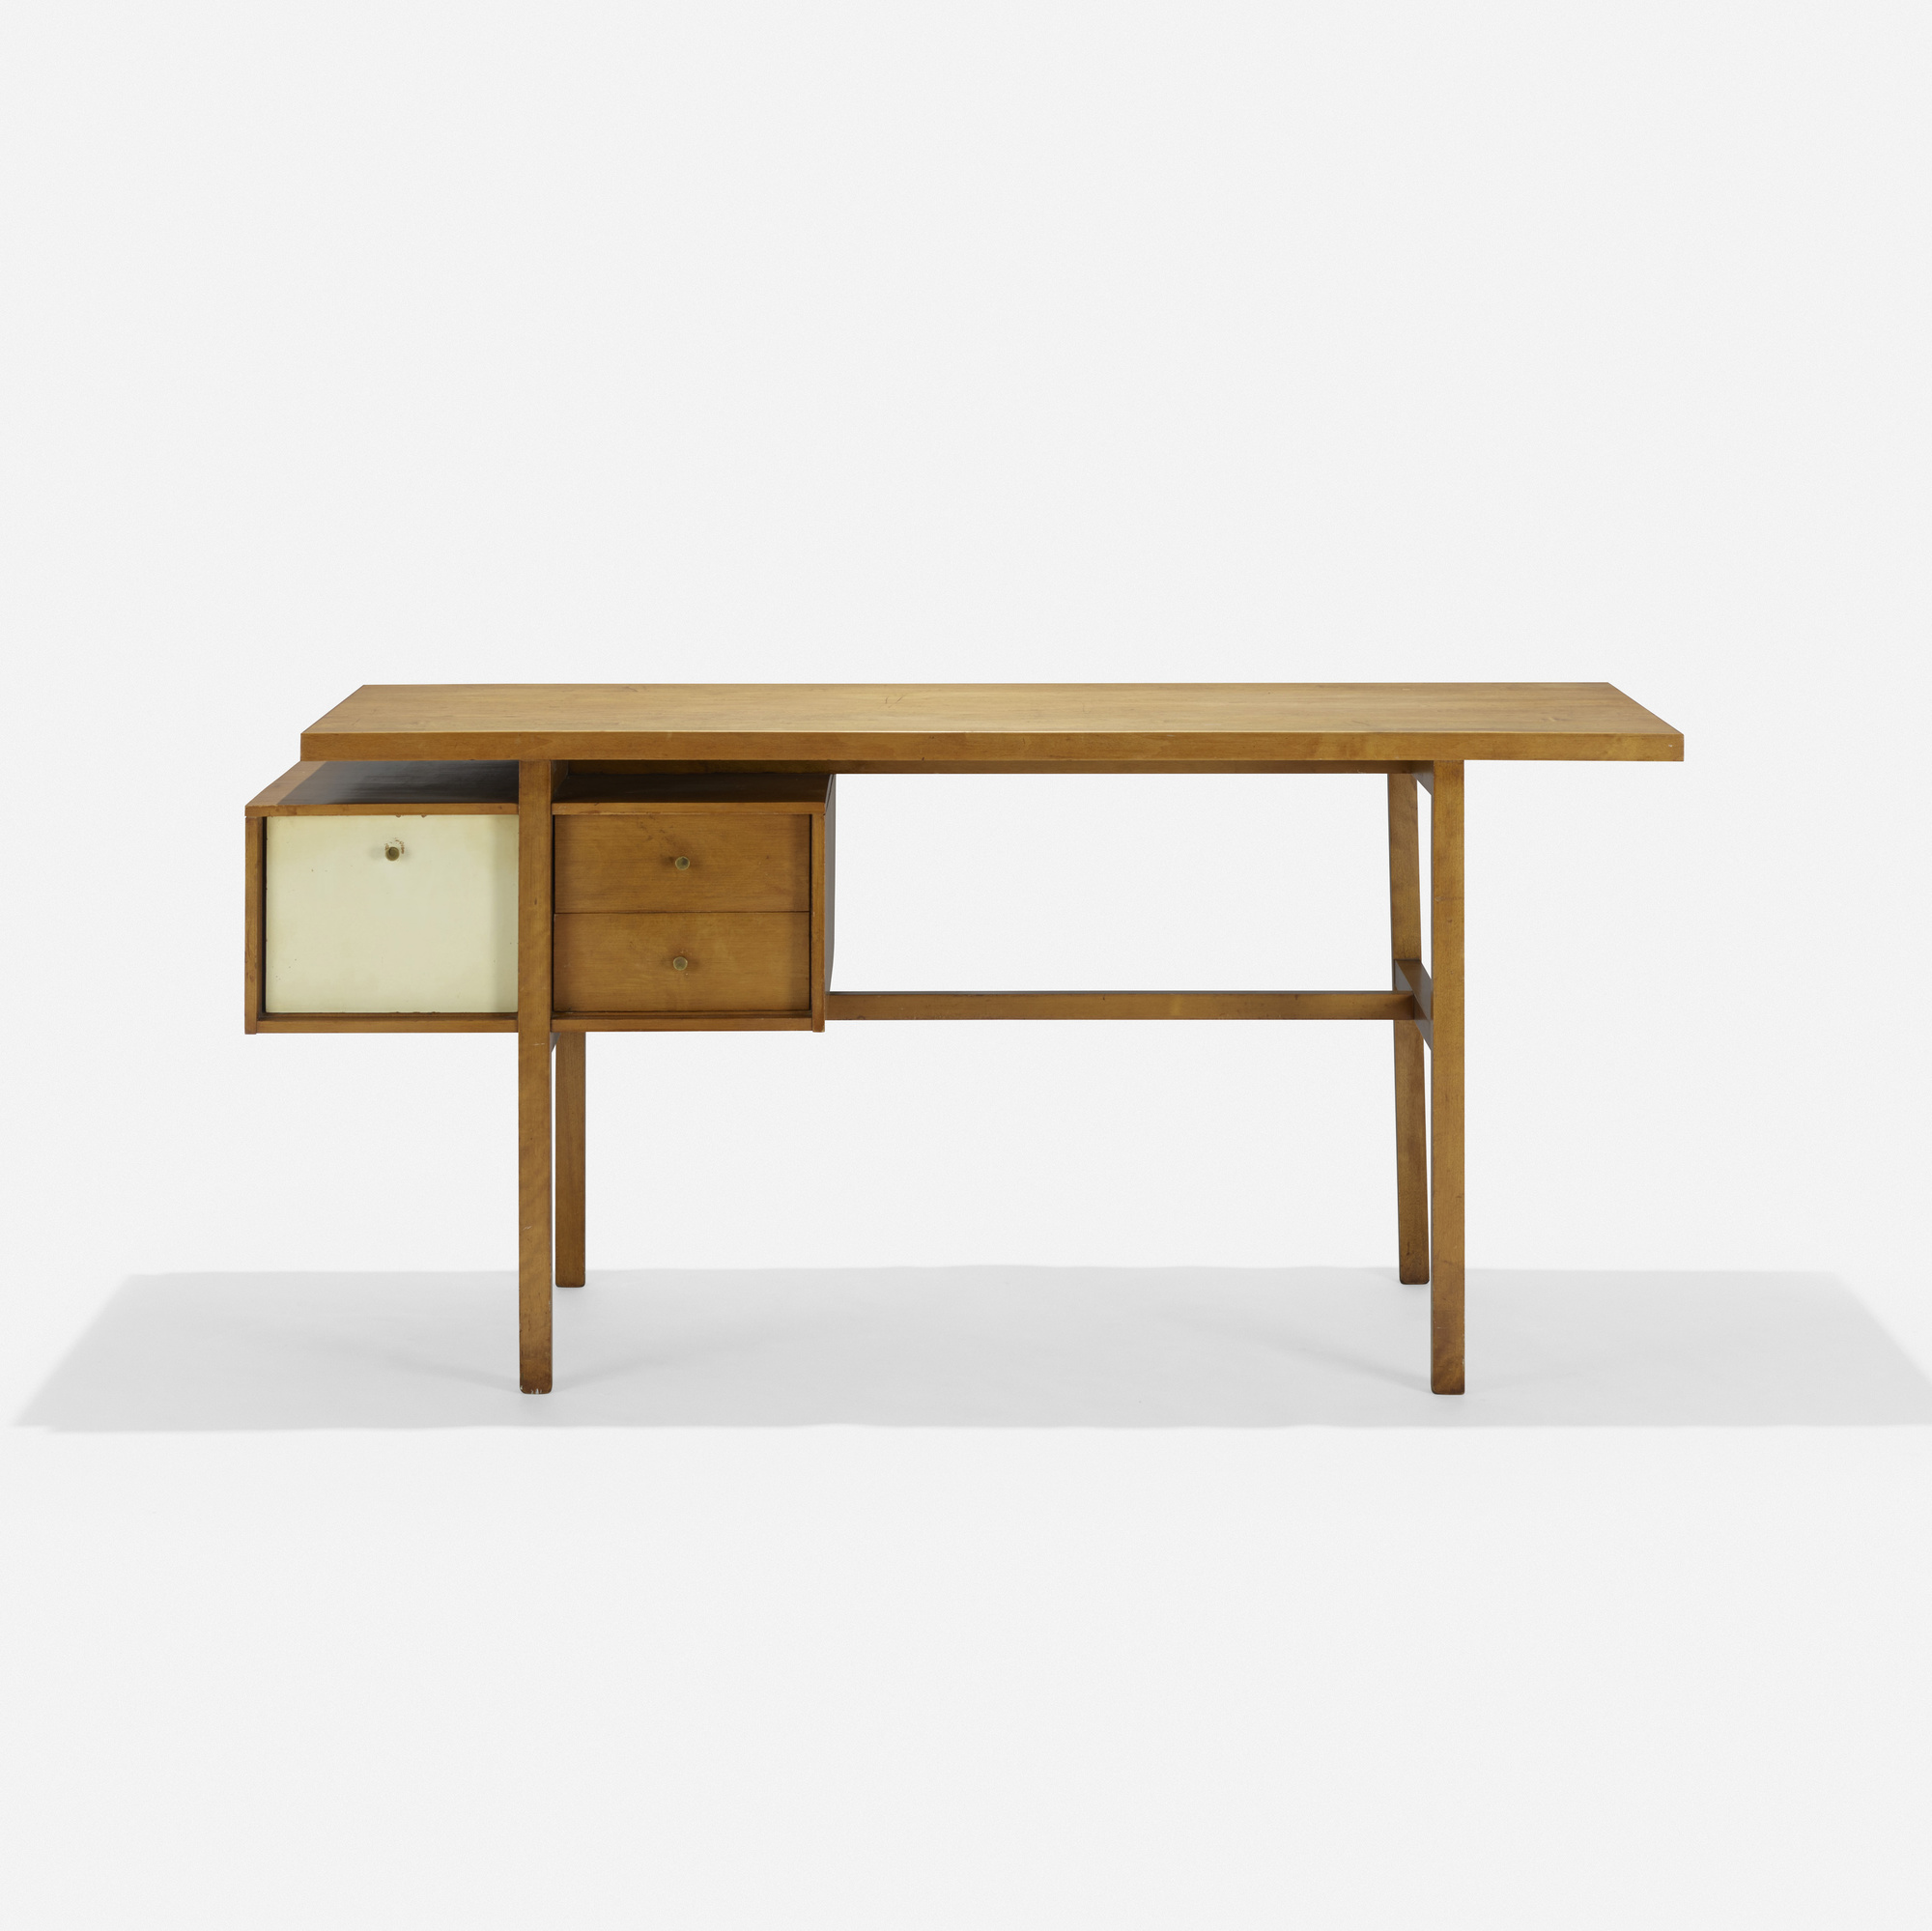 228: Milo Baughman / desk (2 of 3)